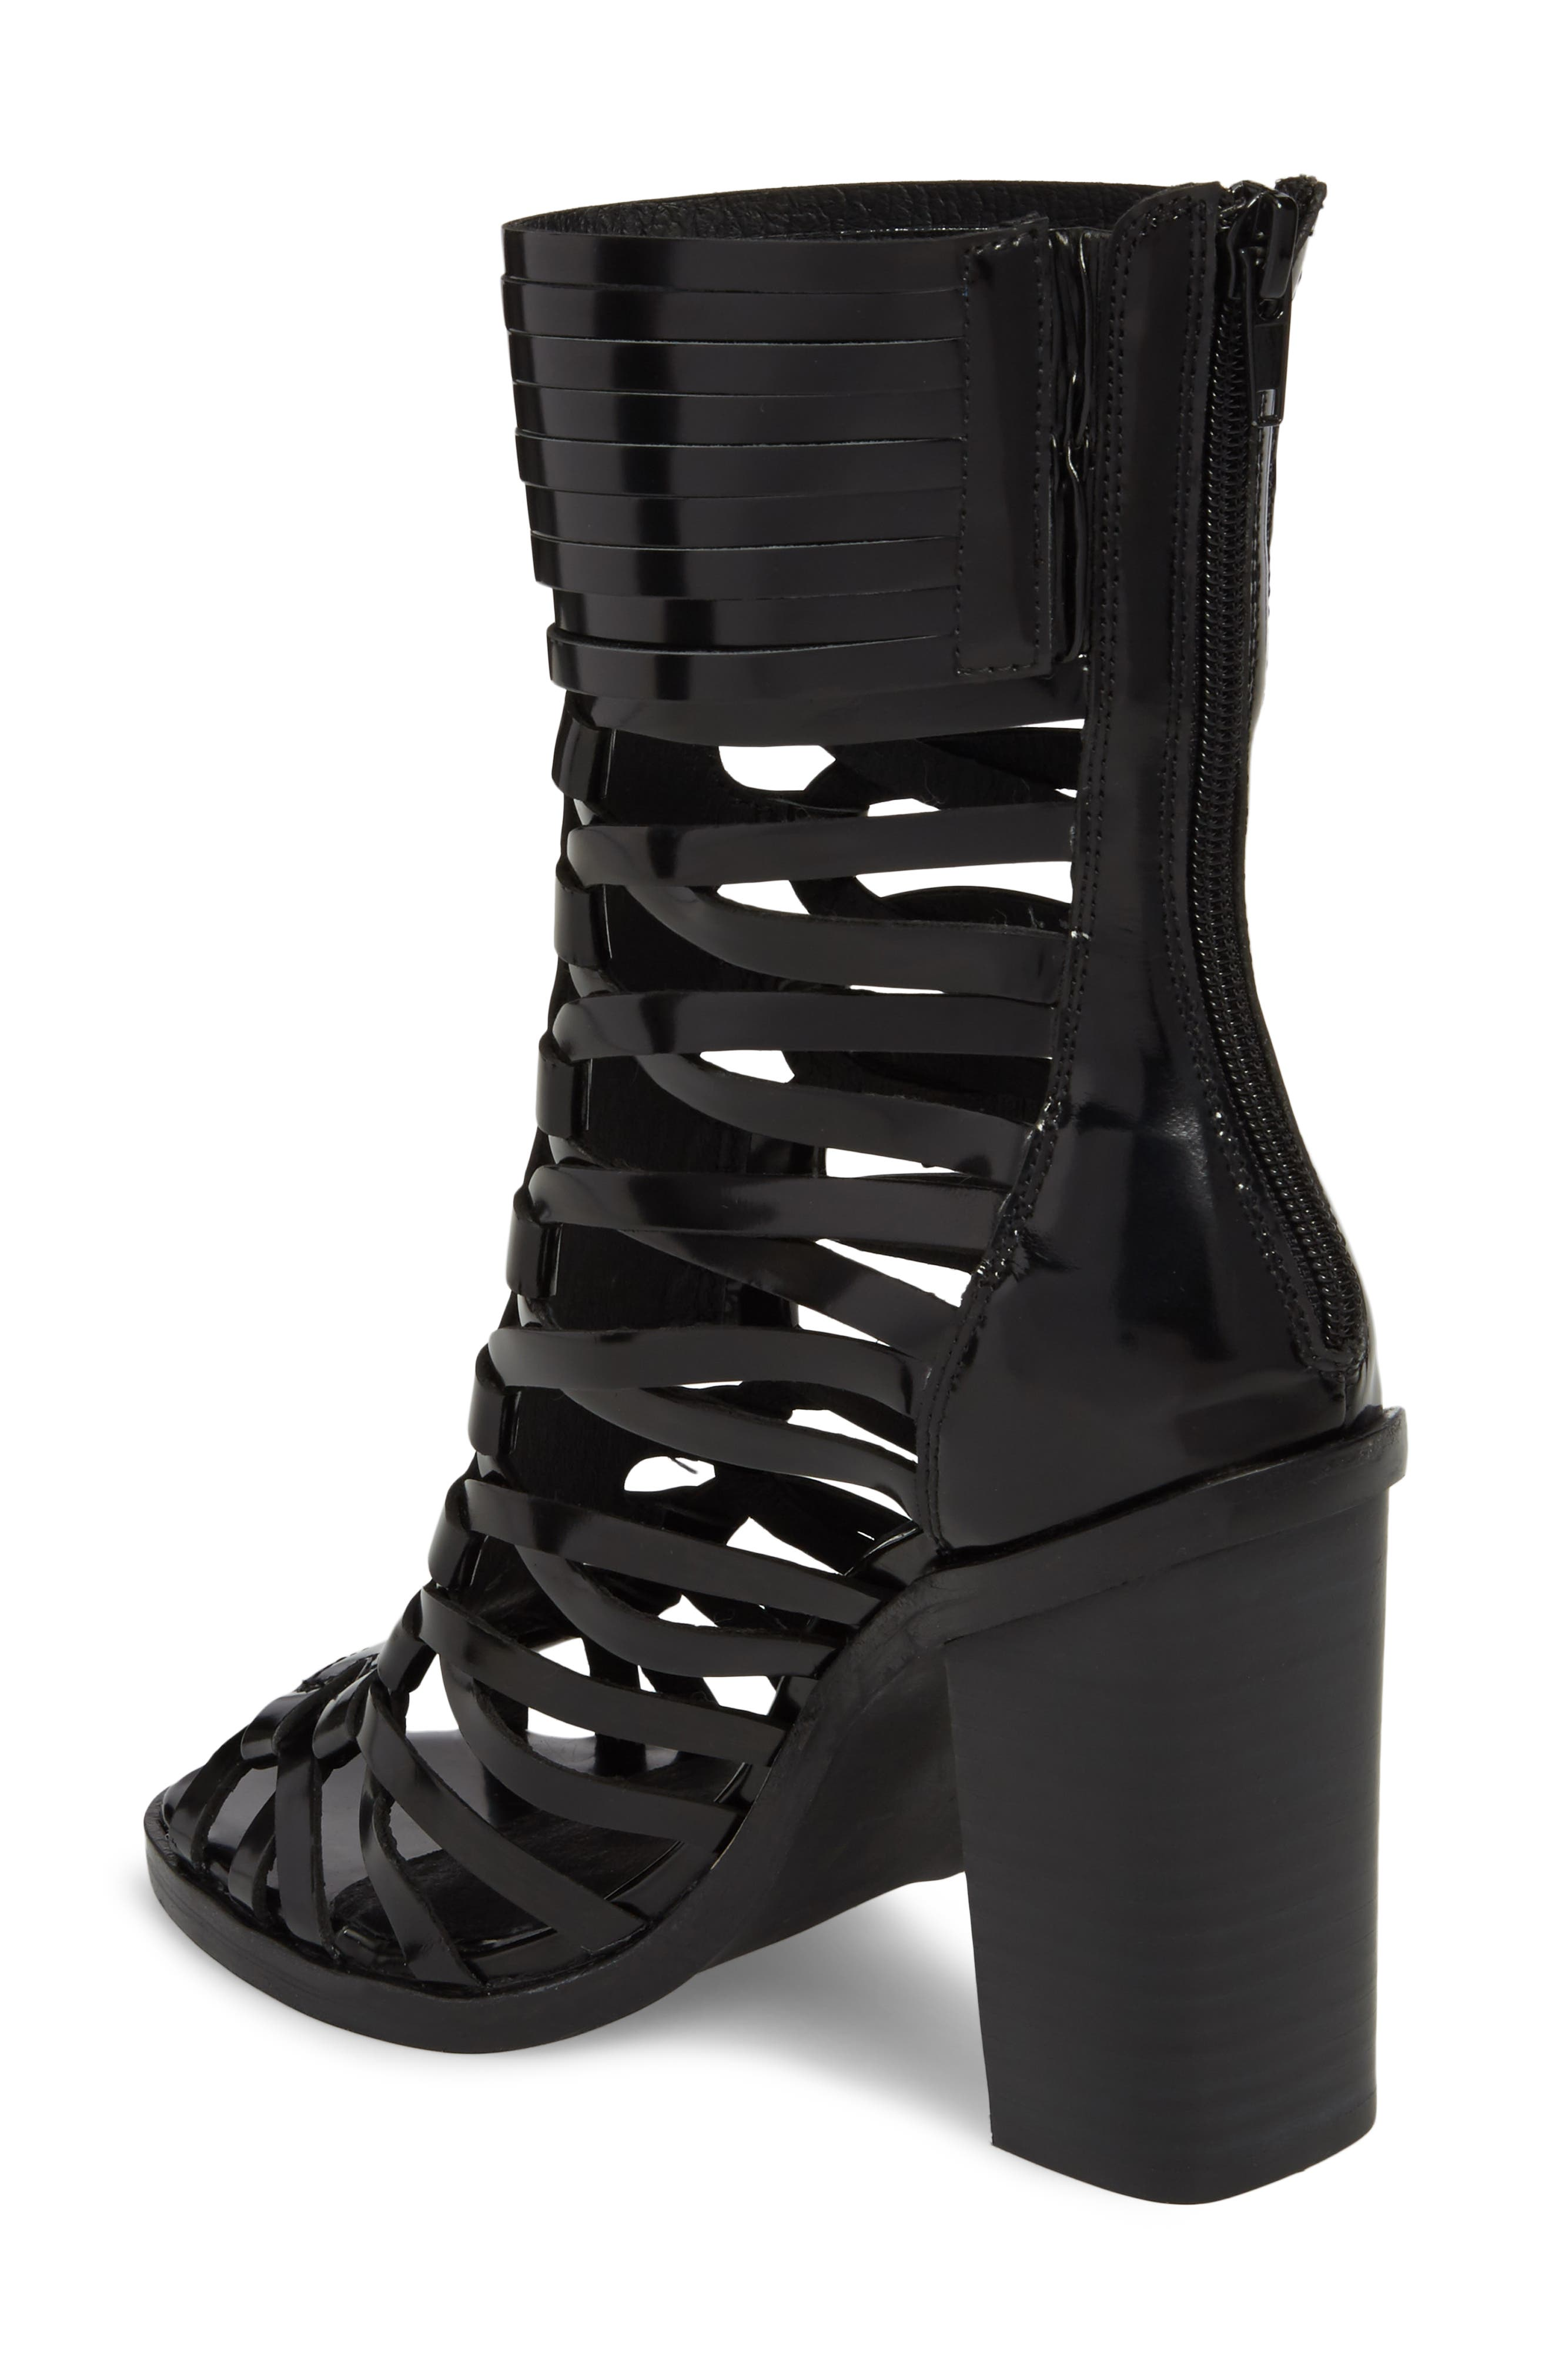 Deportivo Strappy Bootie,                             Alternate thumbnail 2, color,                             Black Leather